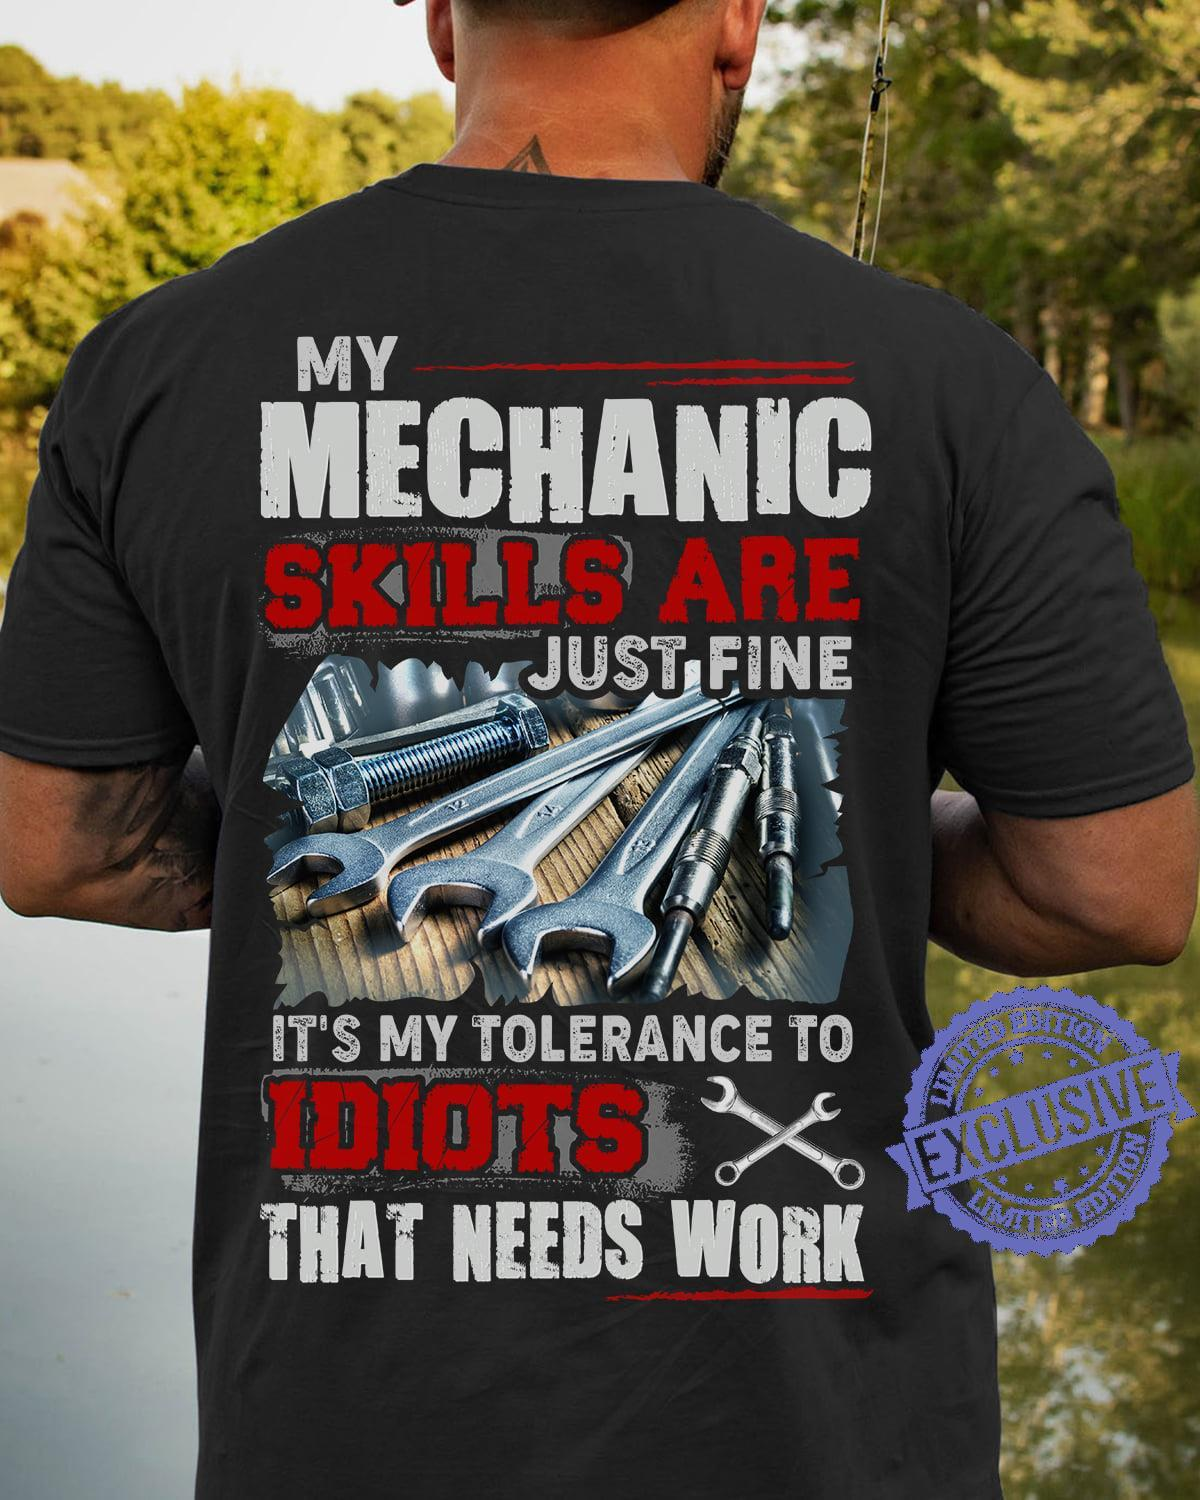 My mechanic skills are just fine it's my tolerance to idiots that needs work shirt